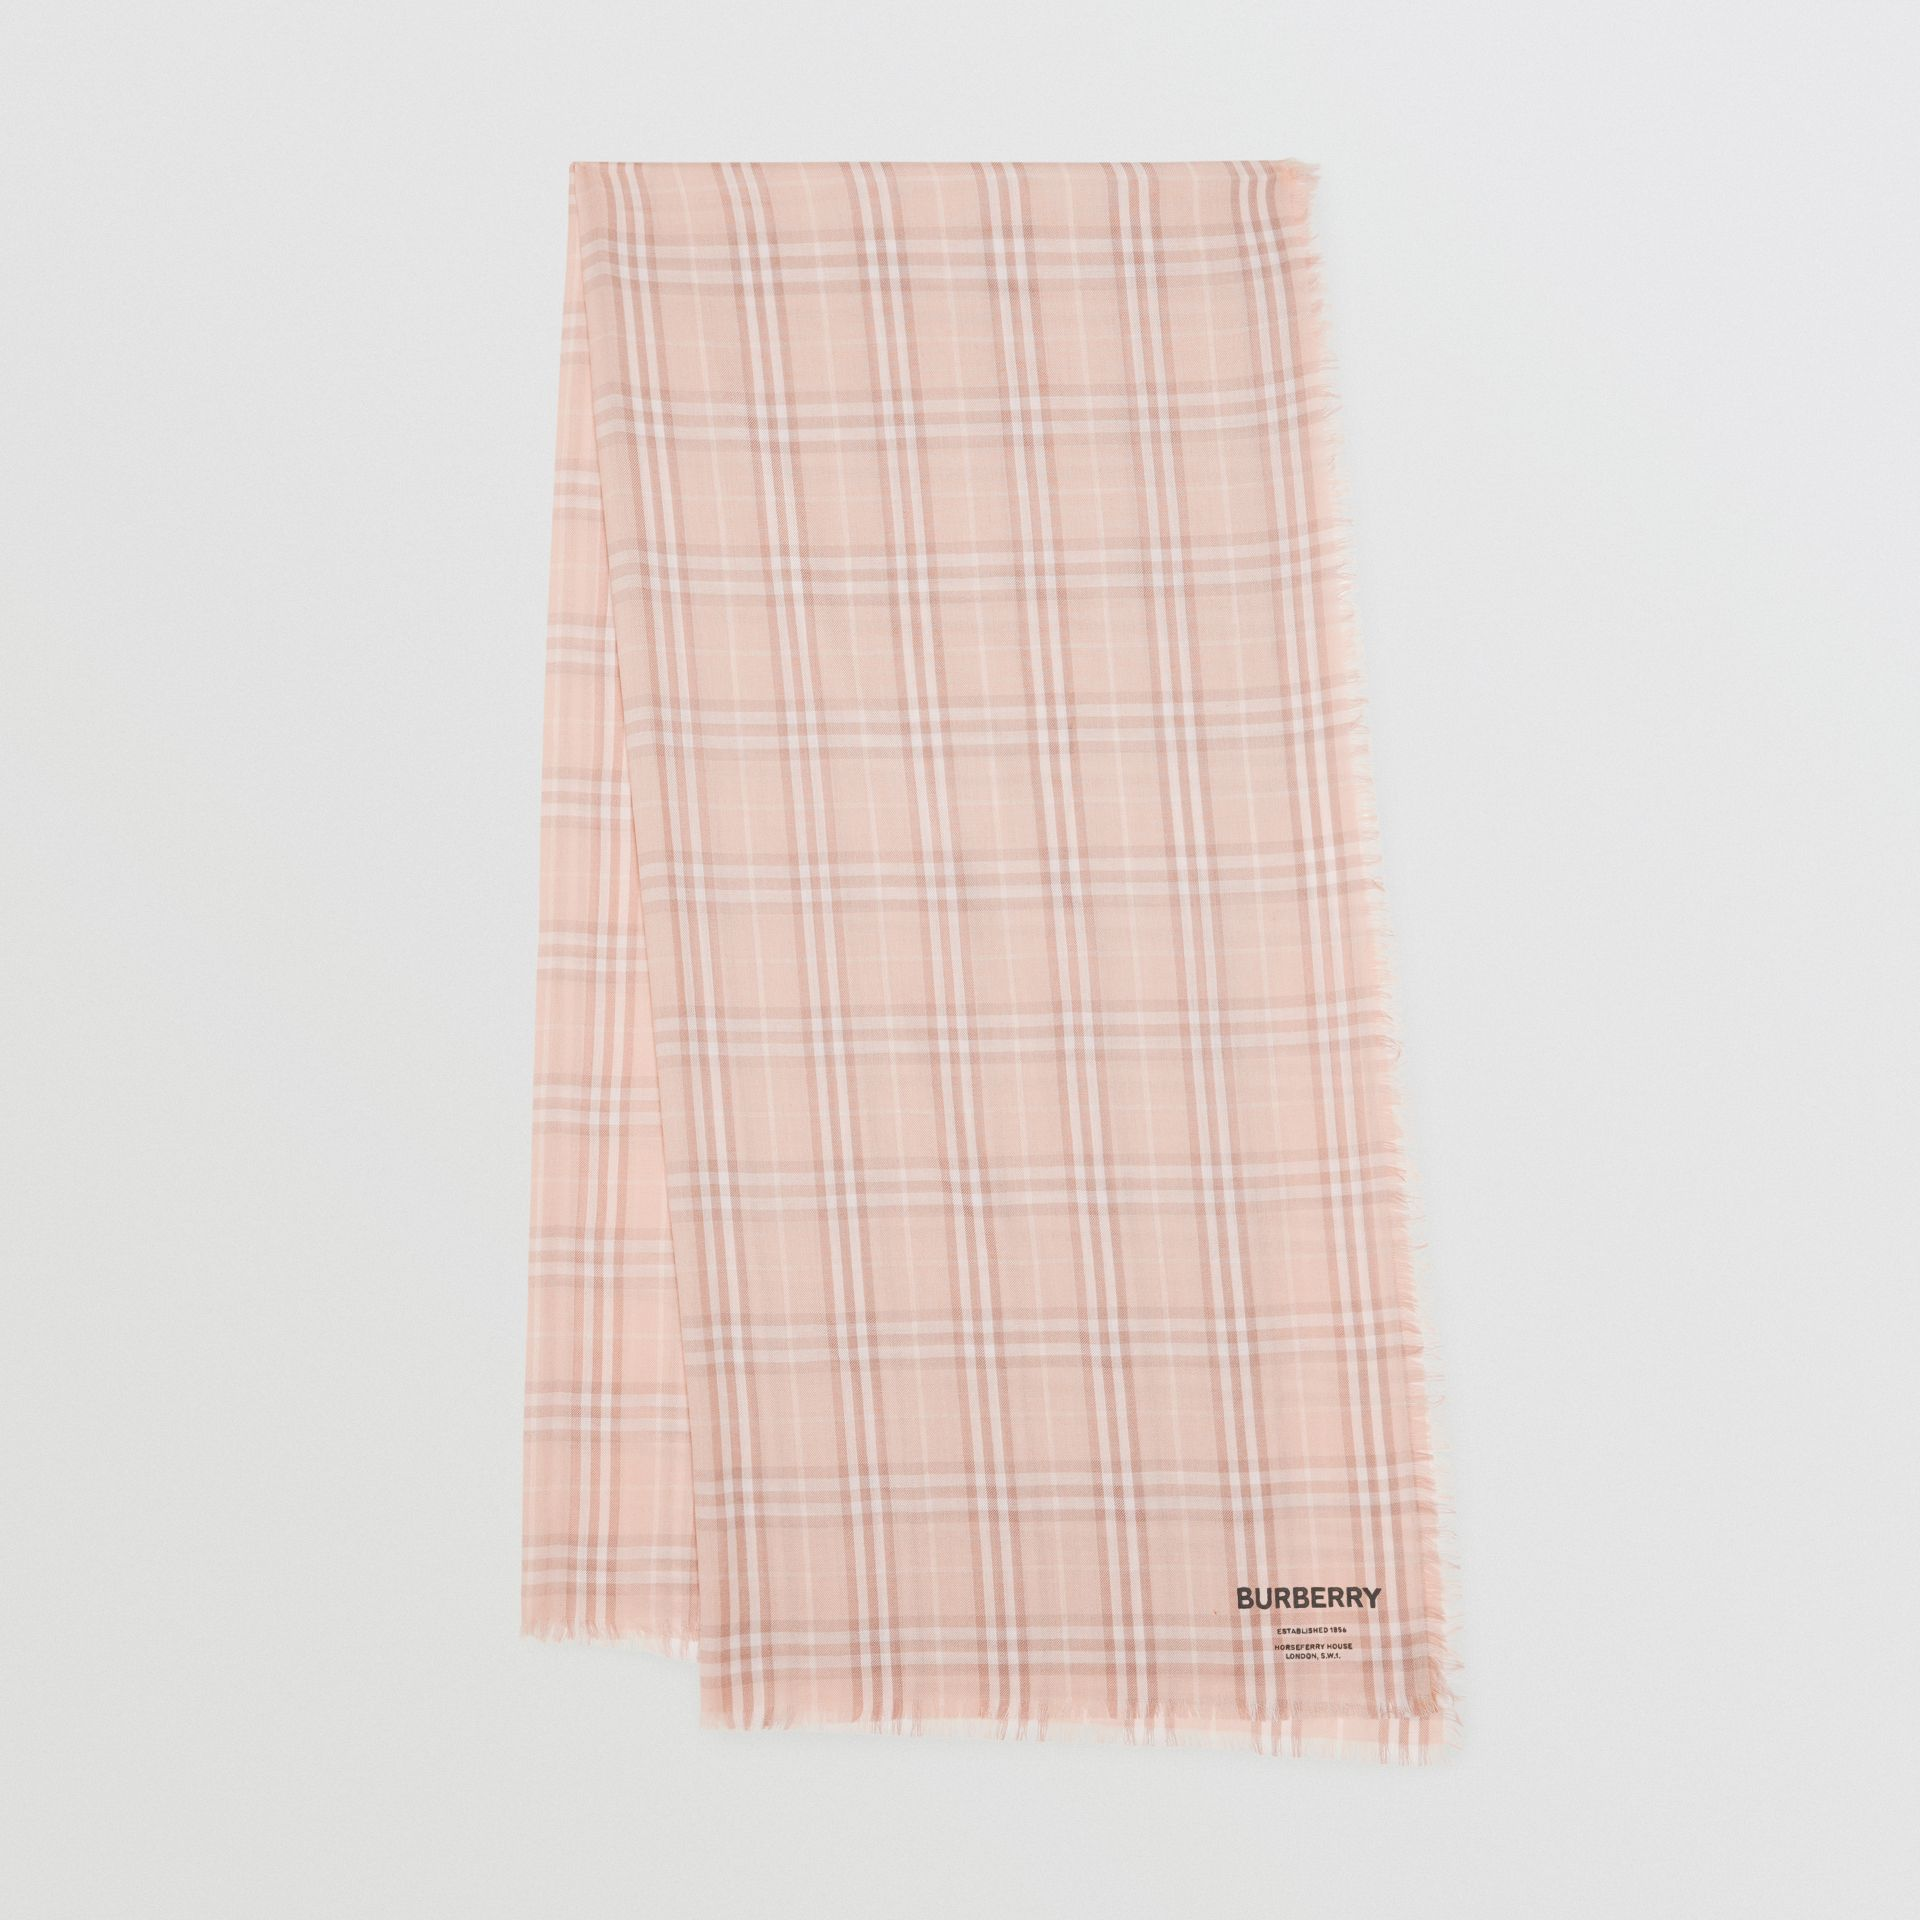 Embroidered Vintage Check Lightweight Cashmere Scarf in Soft Peach | Burberry - gallery image 0